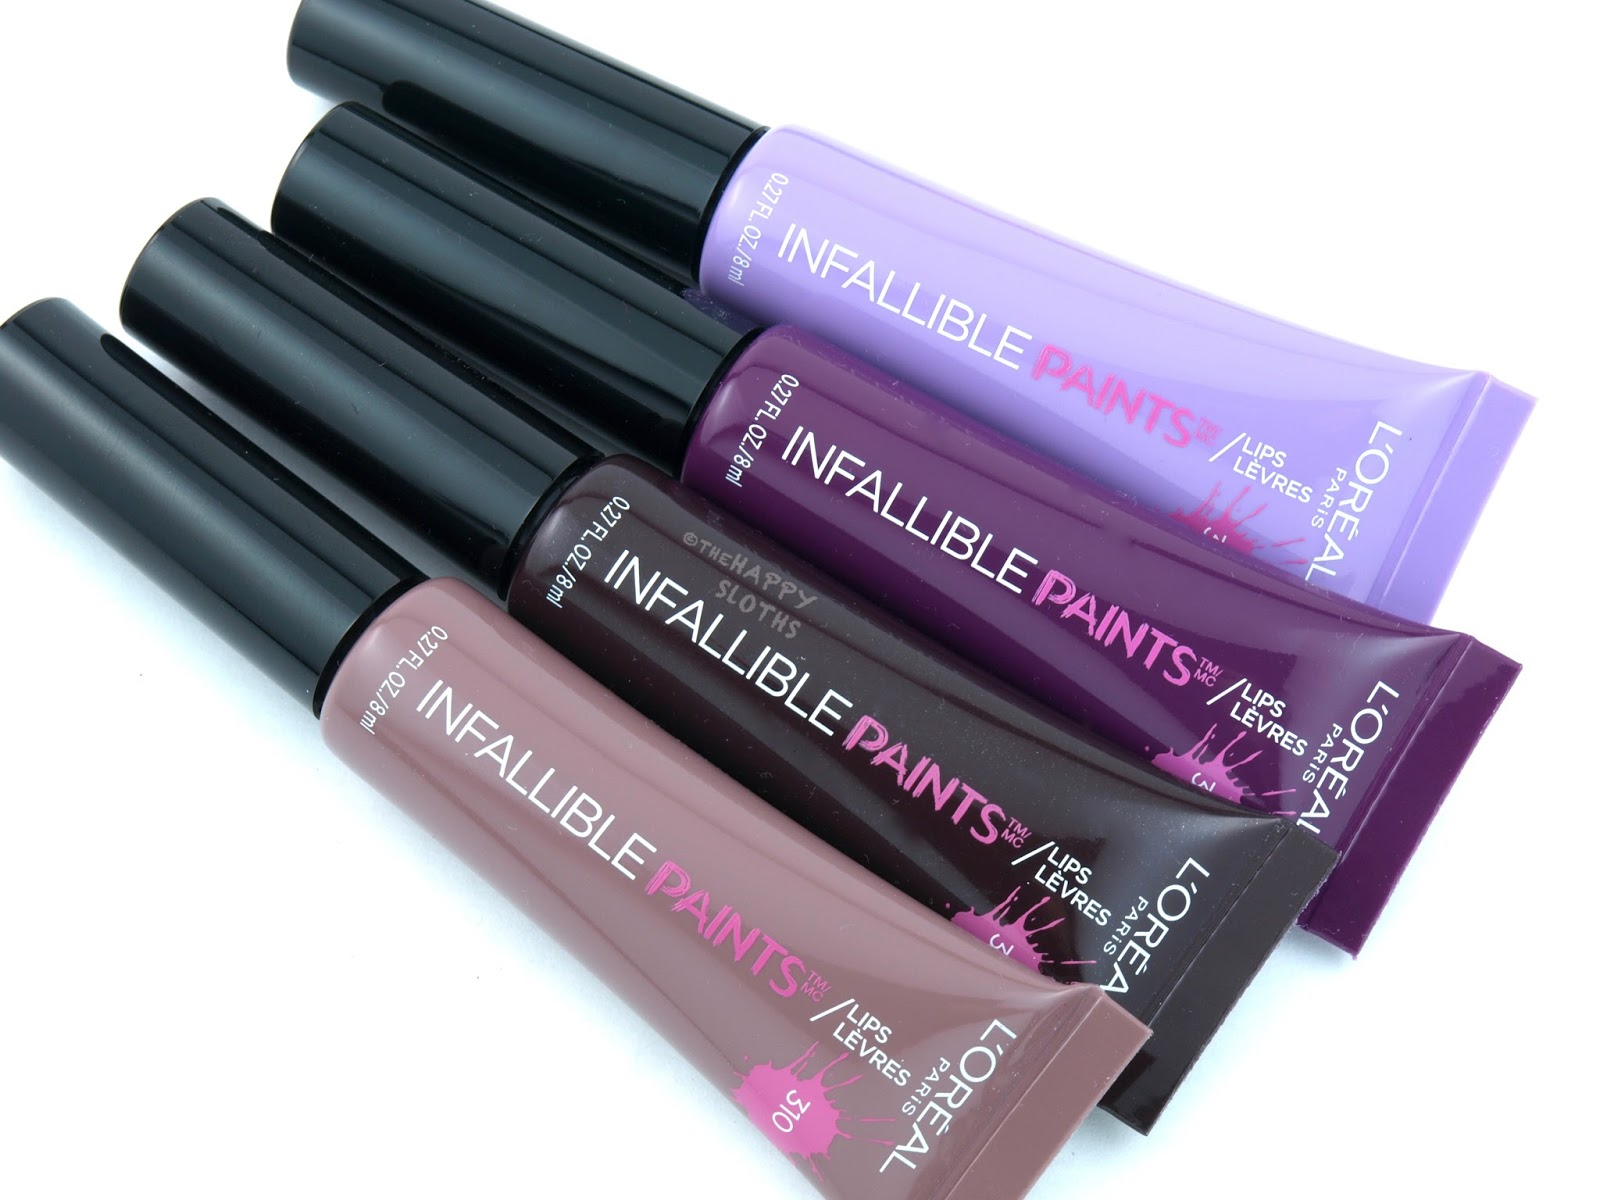 L'Oreal Infallible Lip Paints: Review and Swatches